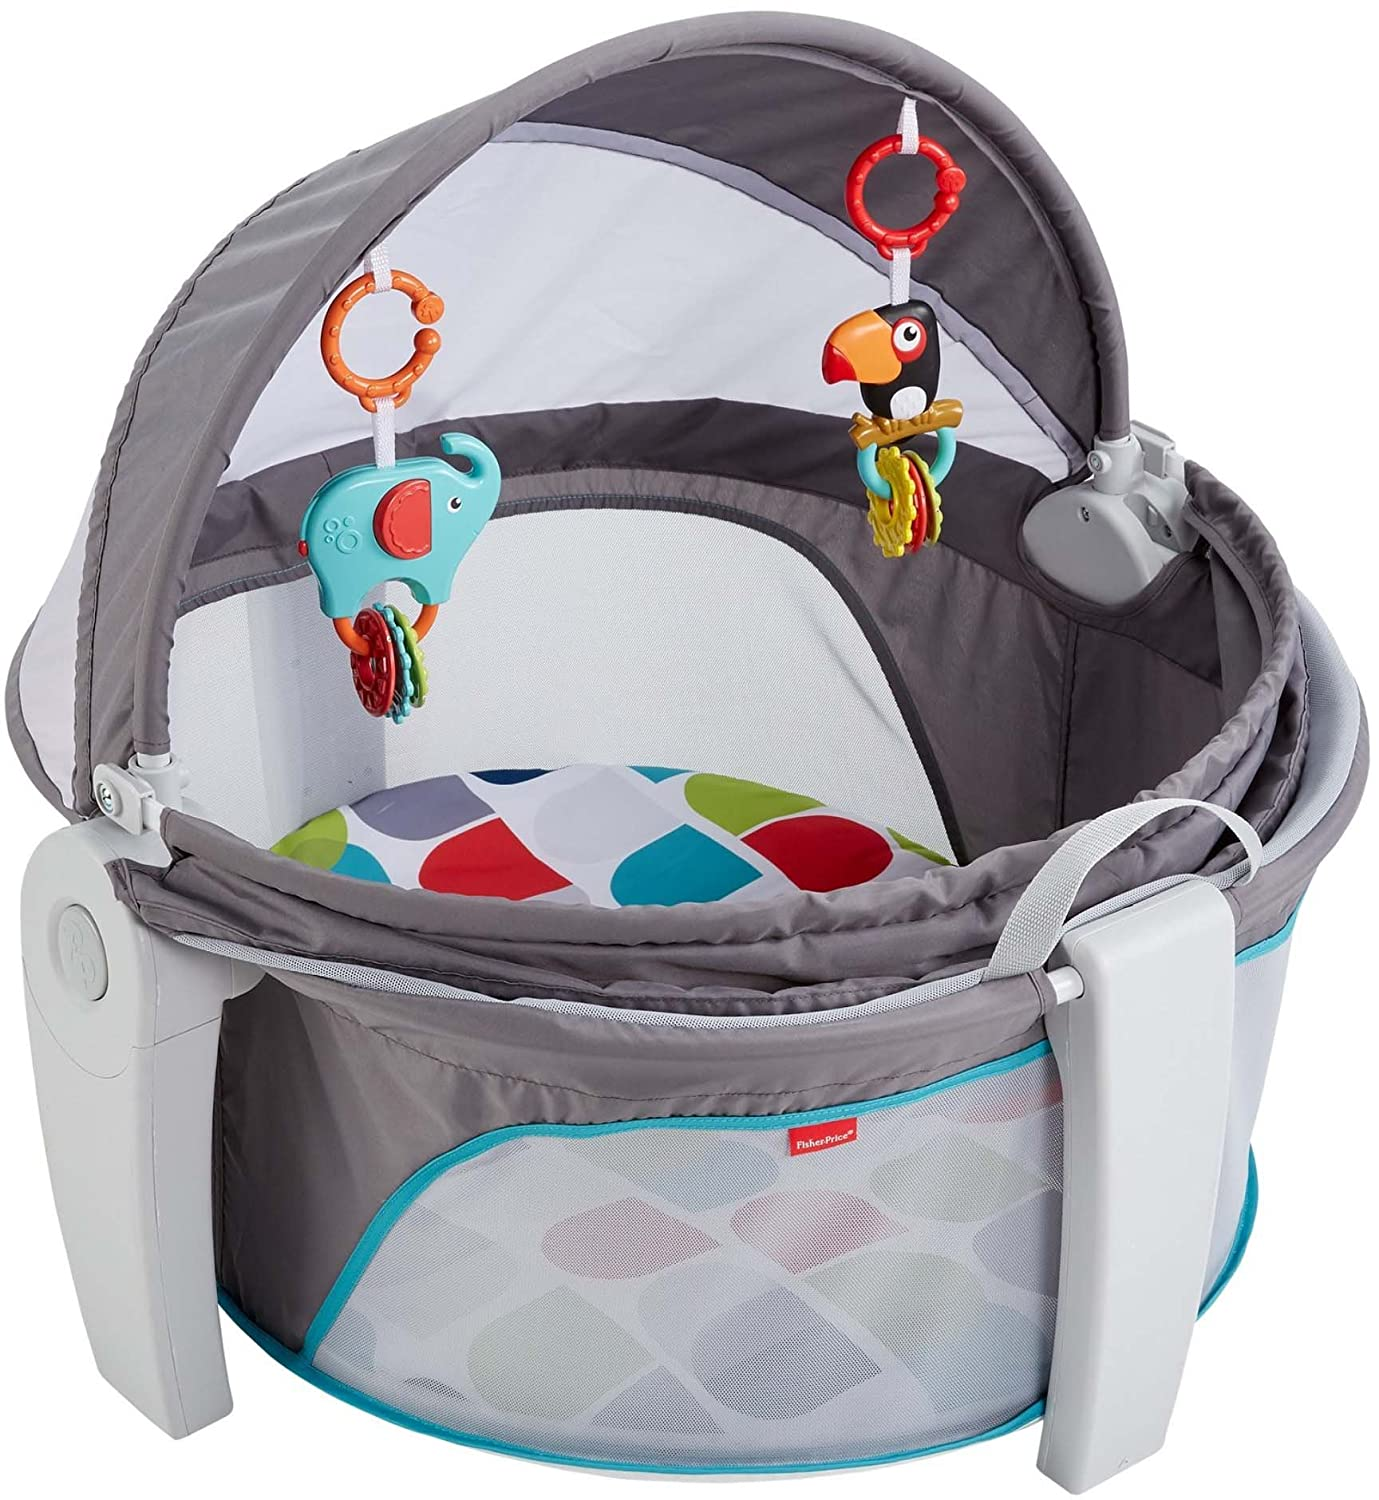 Fisher-Price On-the-Go Baby Dome, Grey/Multi-Color [Amazon Exclusive] FVC26